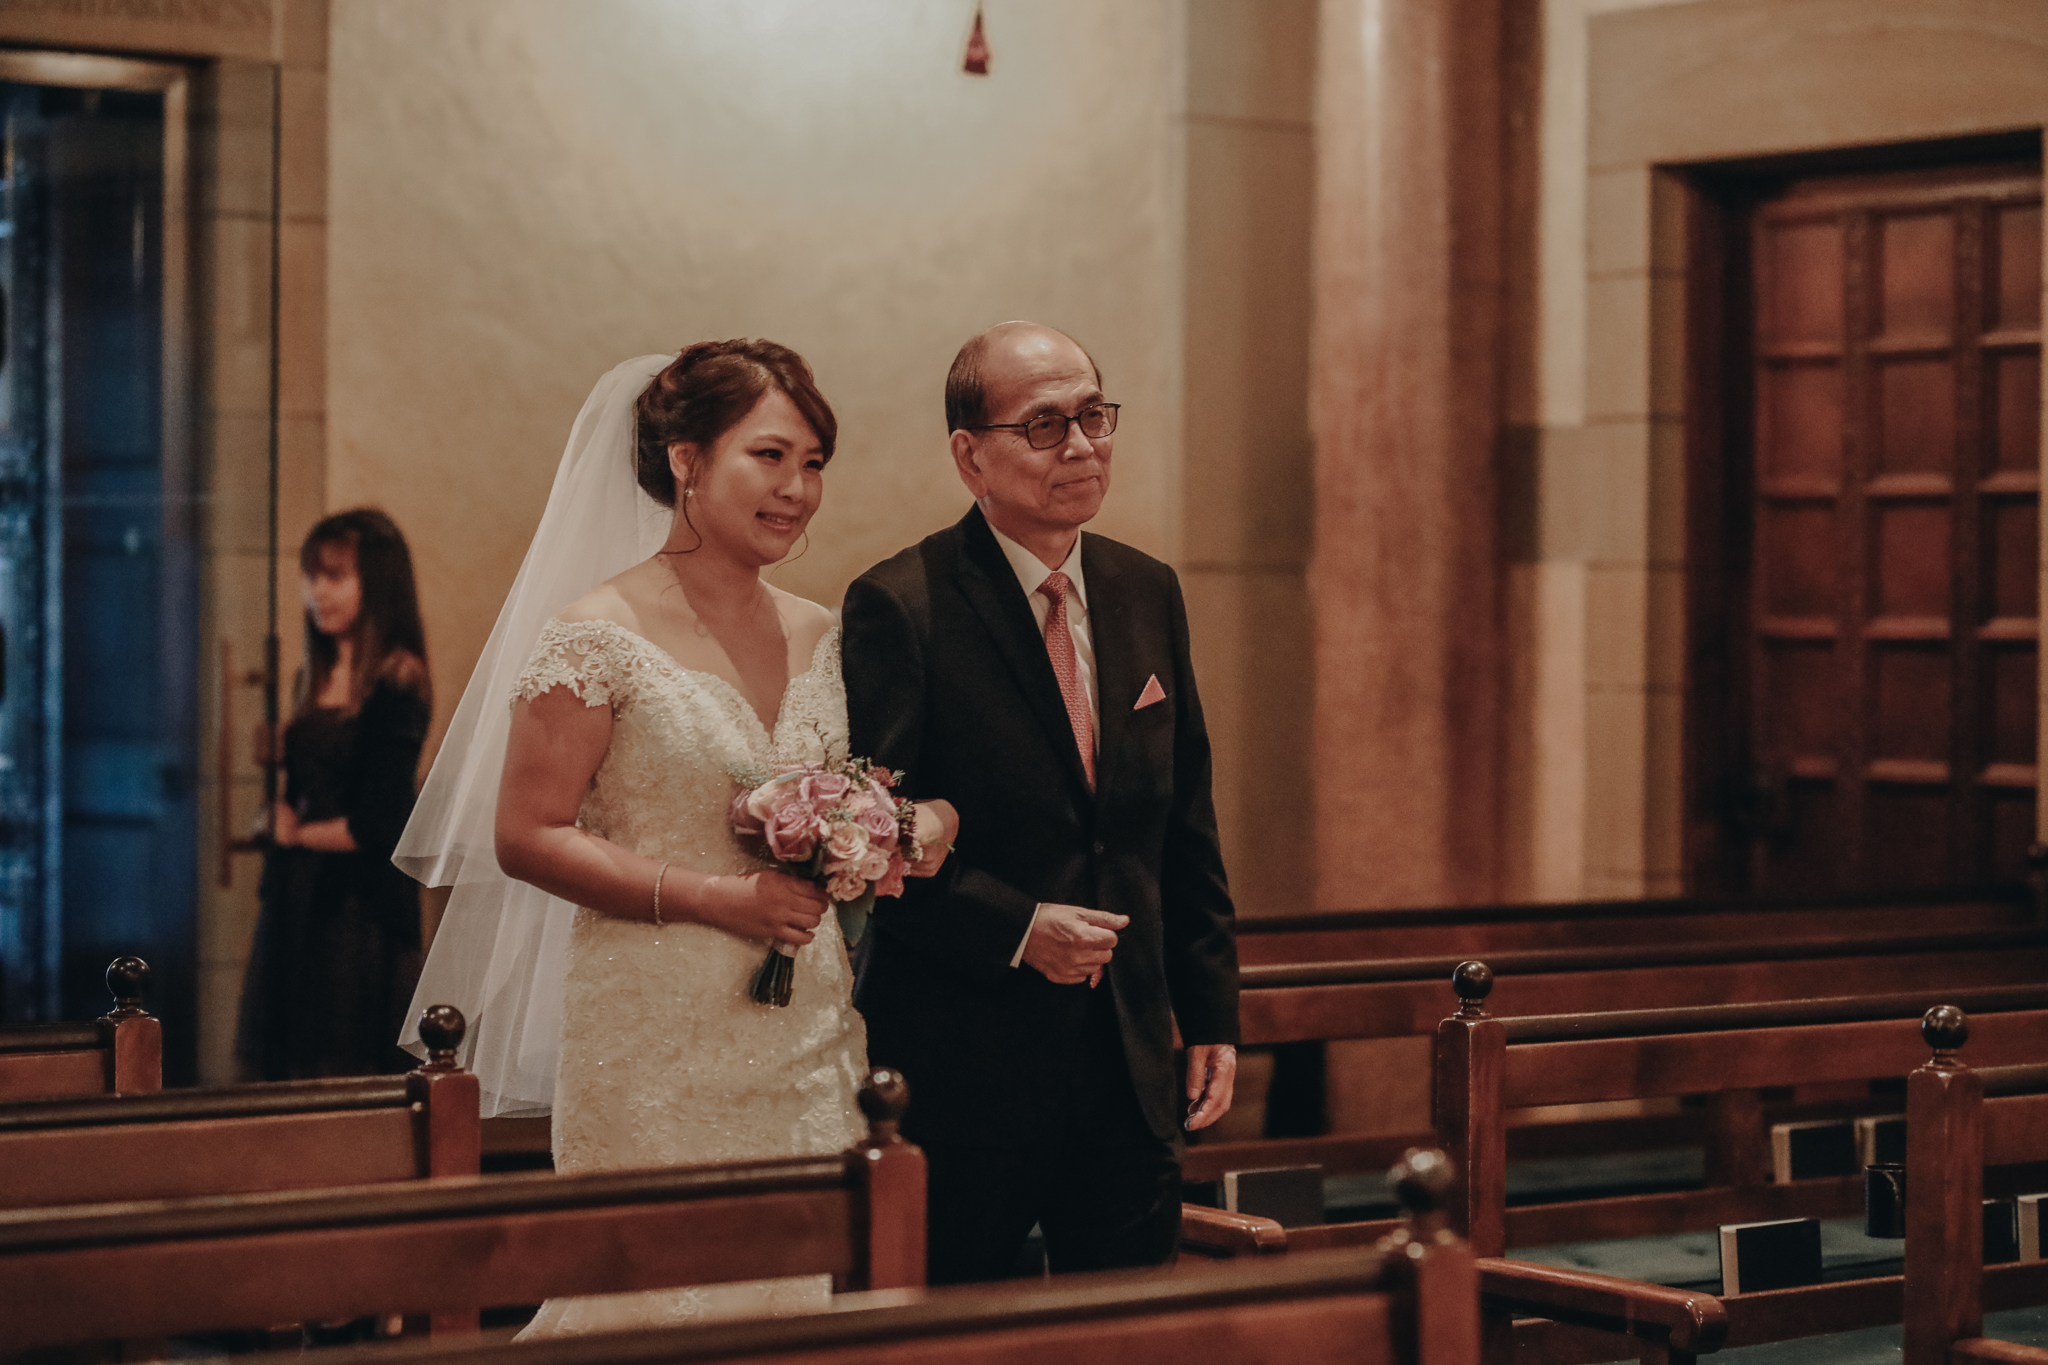 JoyceEric_Wedding_-178.jpg